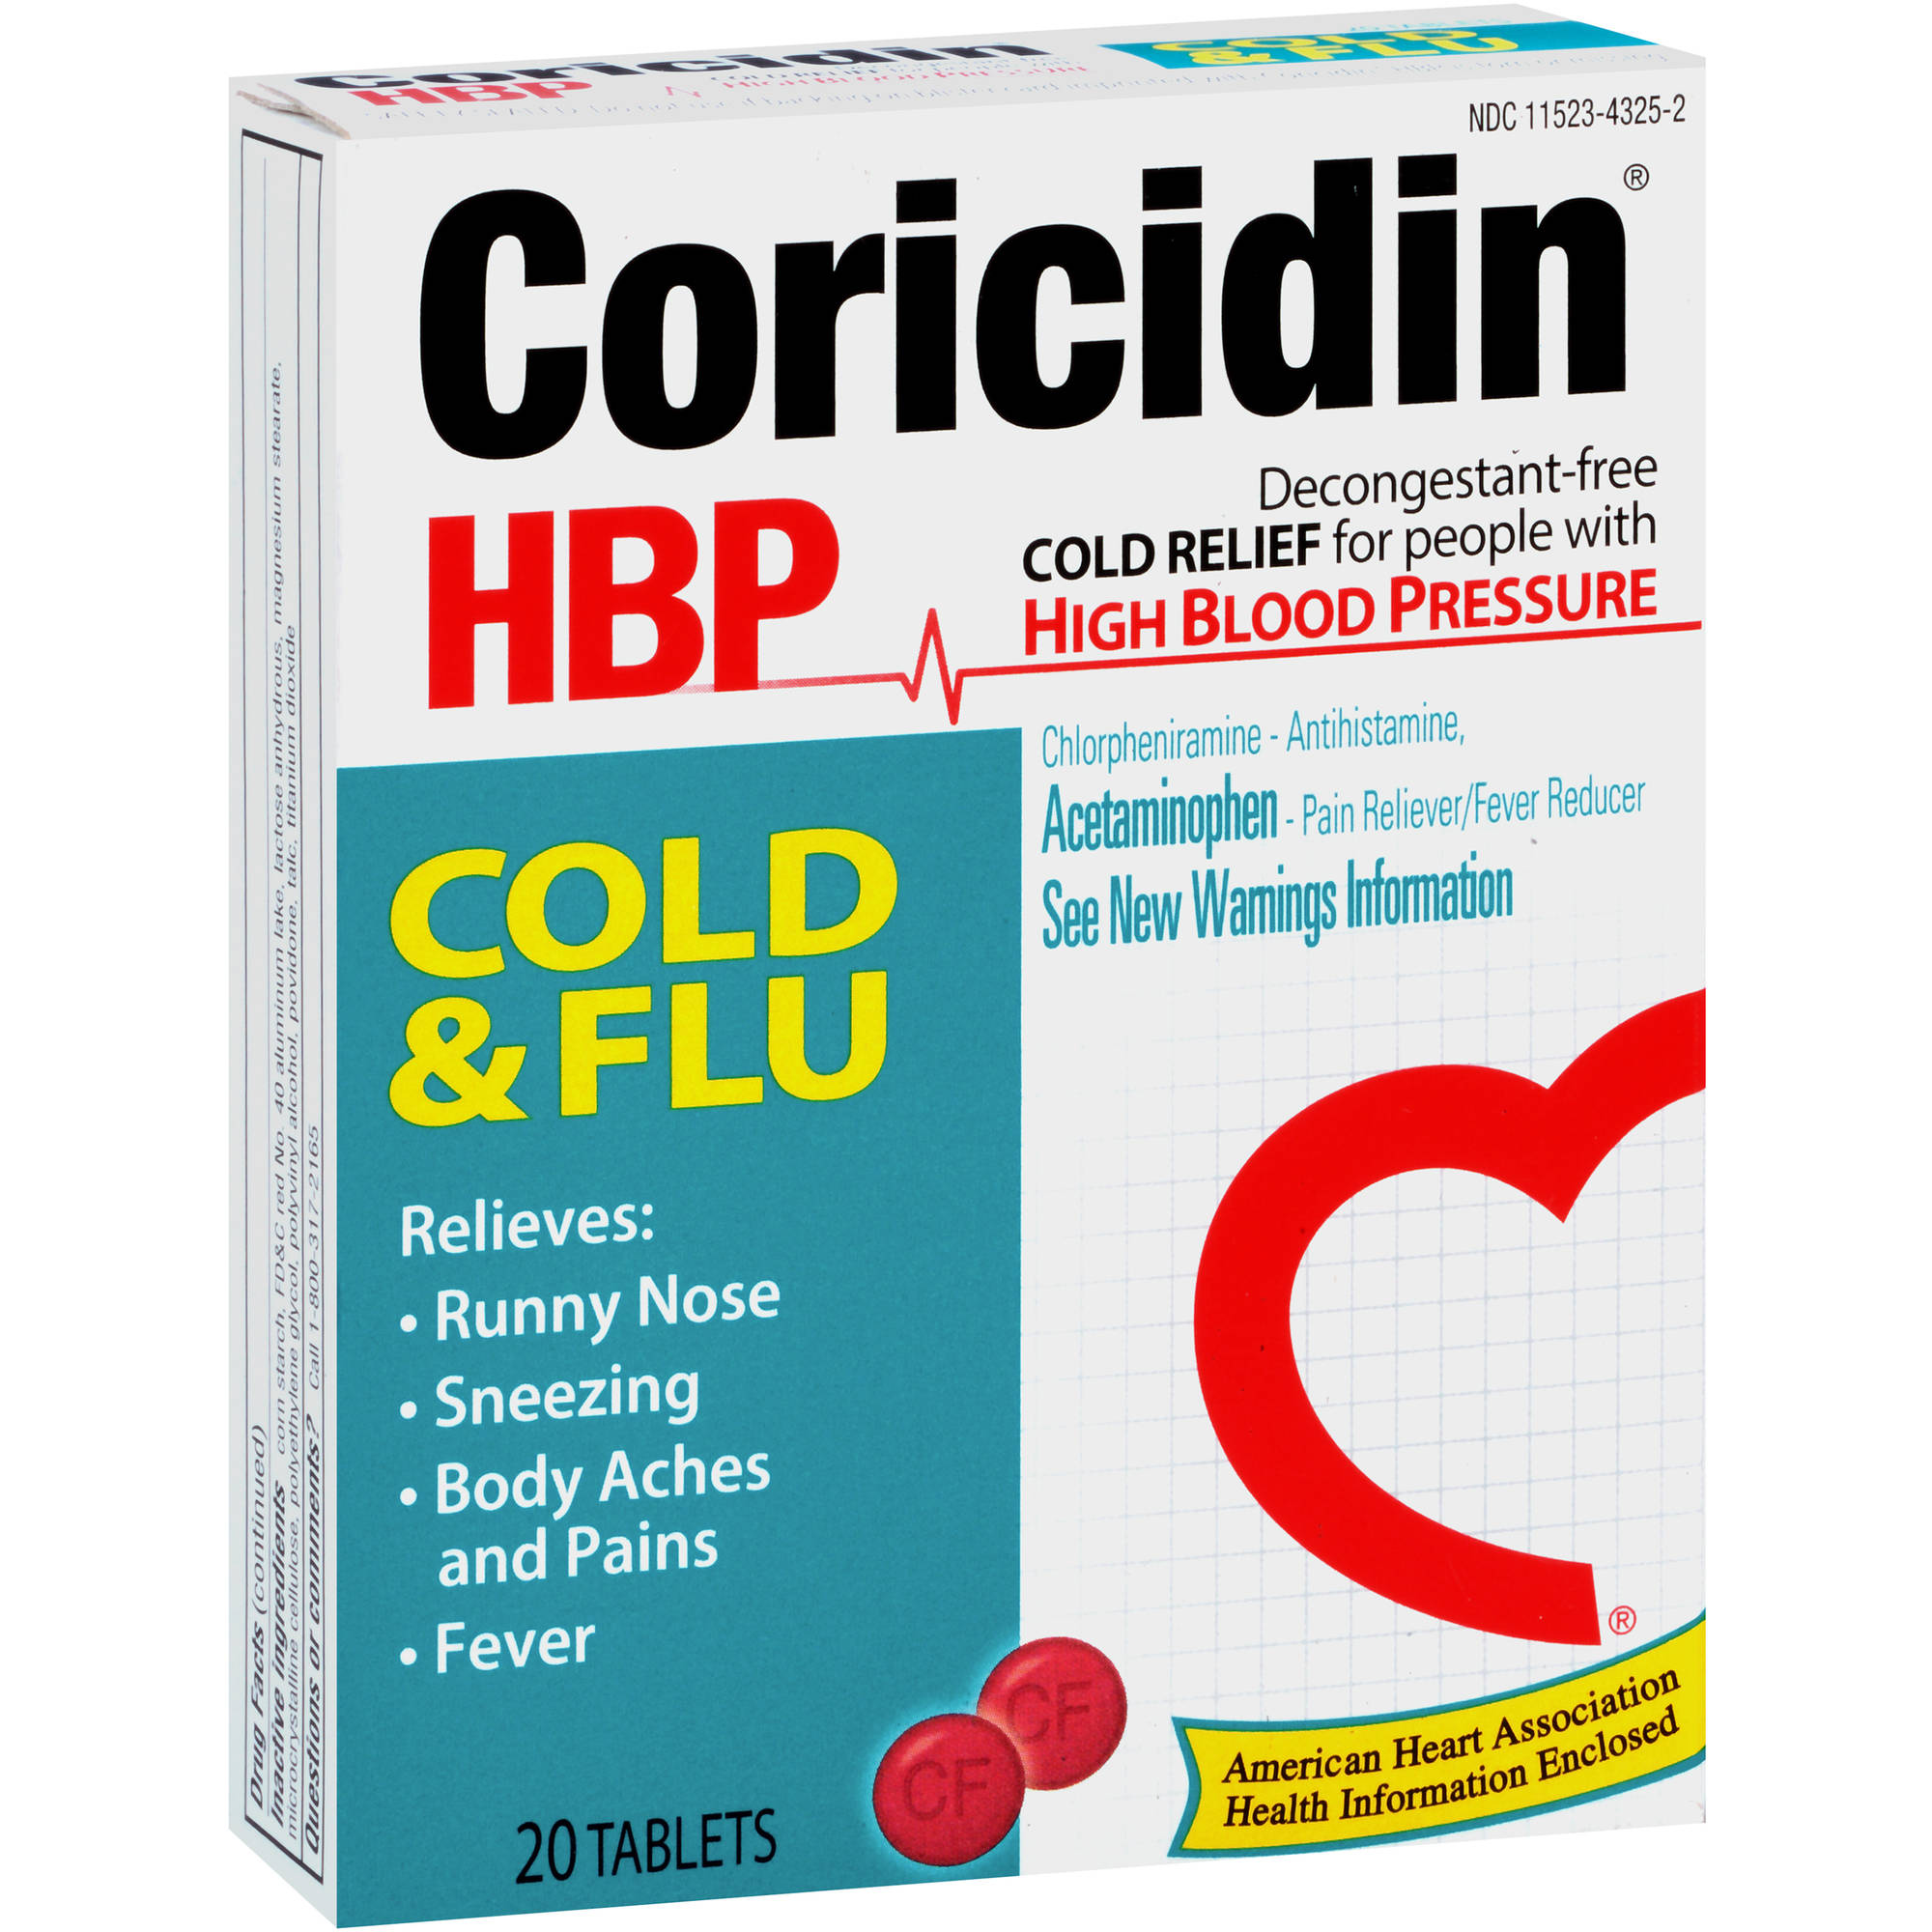 Coricidin HBP Chest Cold & Flu Relief, 20 count